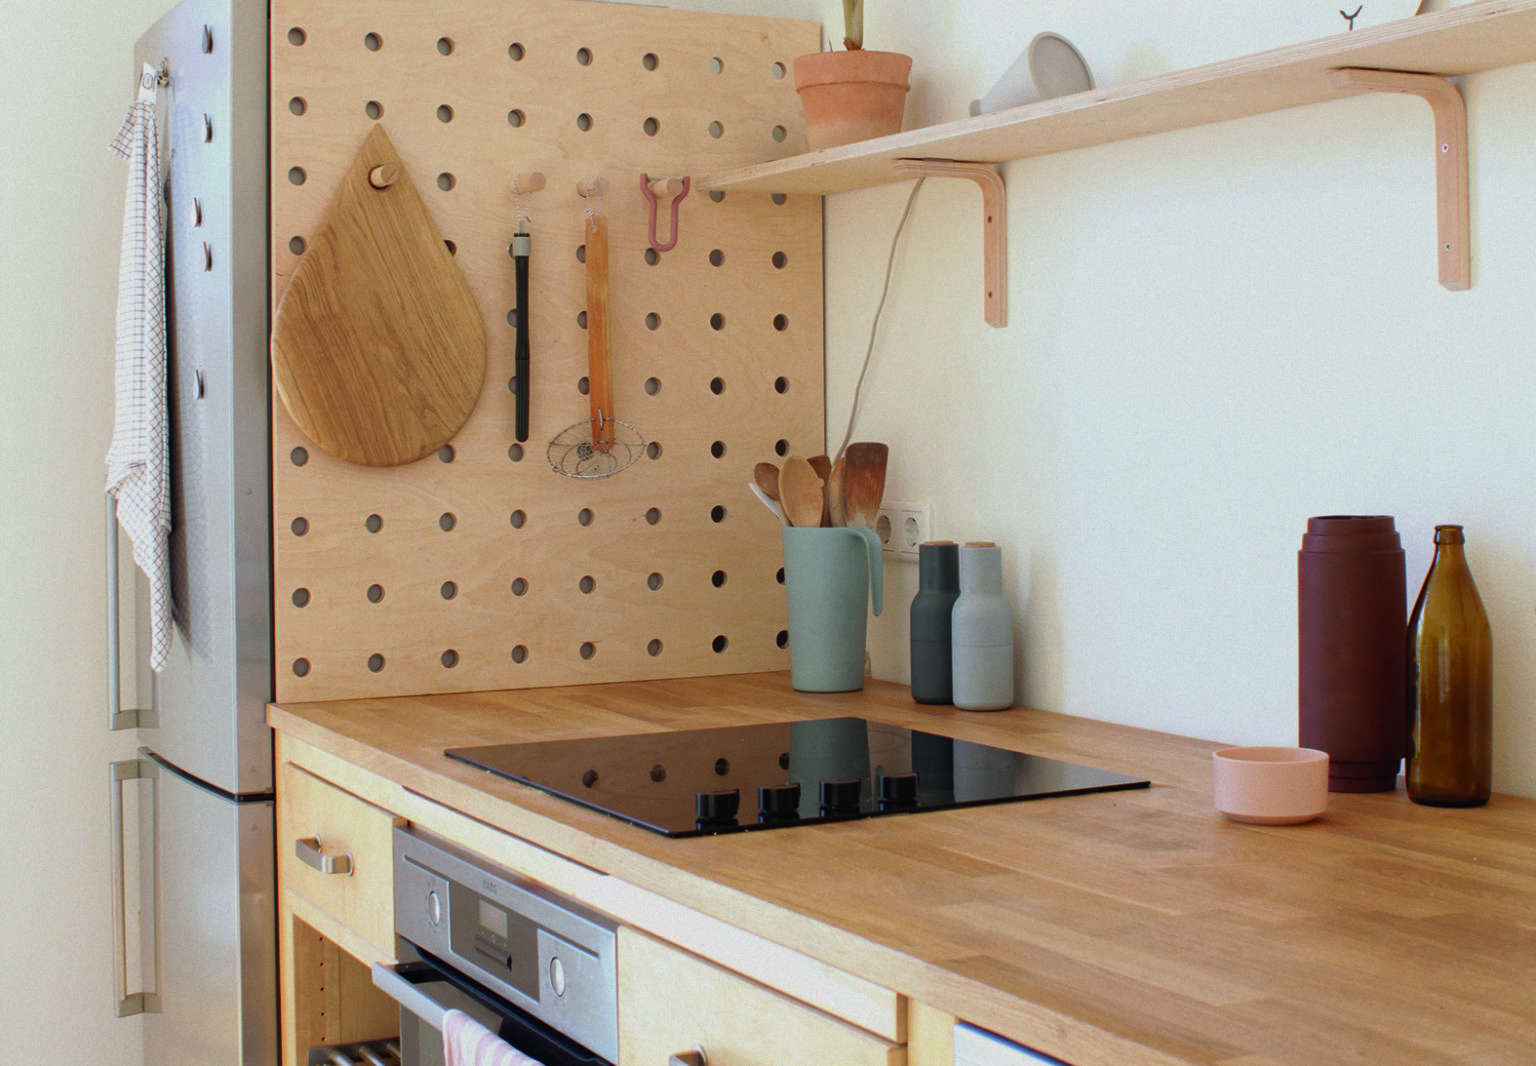 Ordinaire A DIY Wooden Pegboard In The Kitchen Of Illustrator/graphic Designer  Swantje Hindrichsen Created From